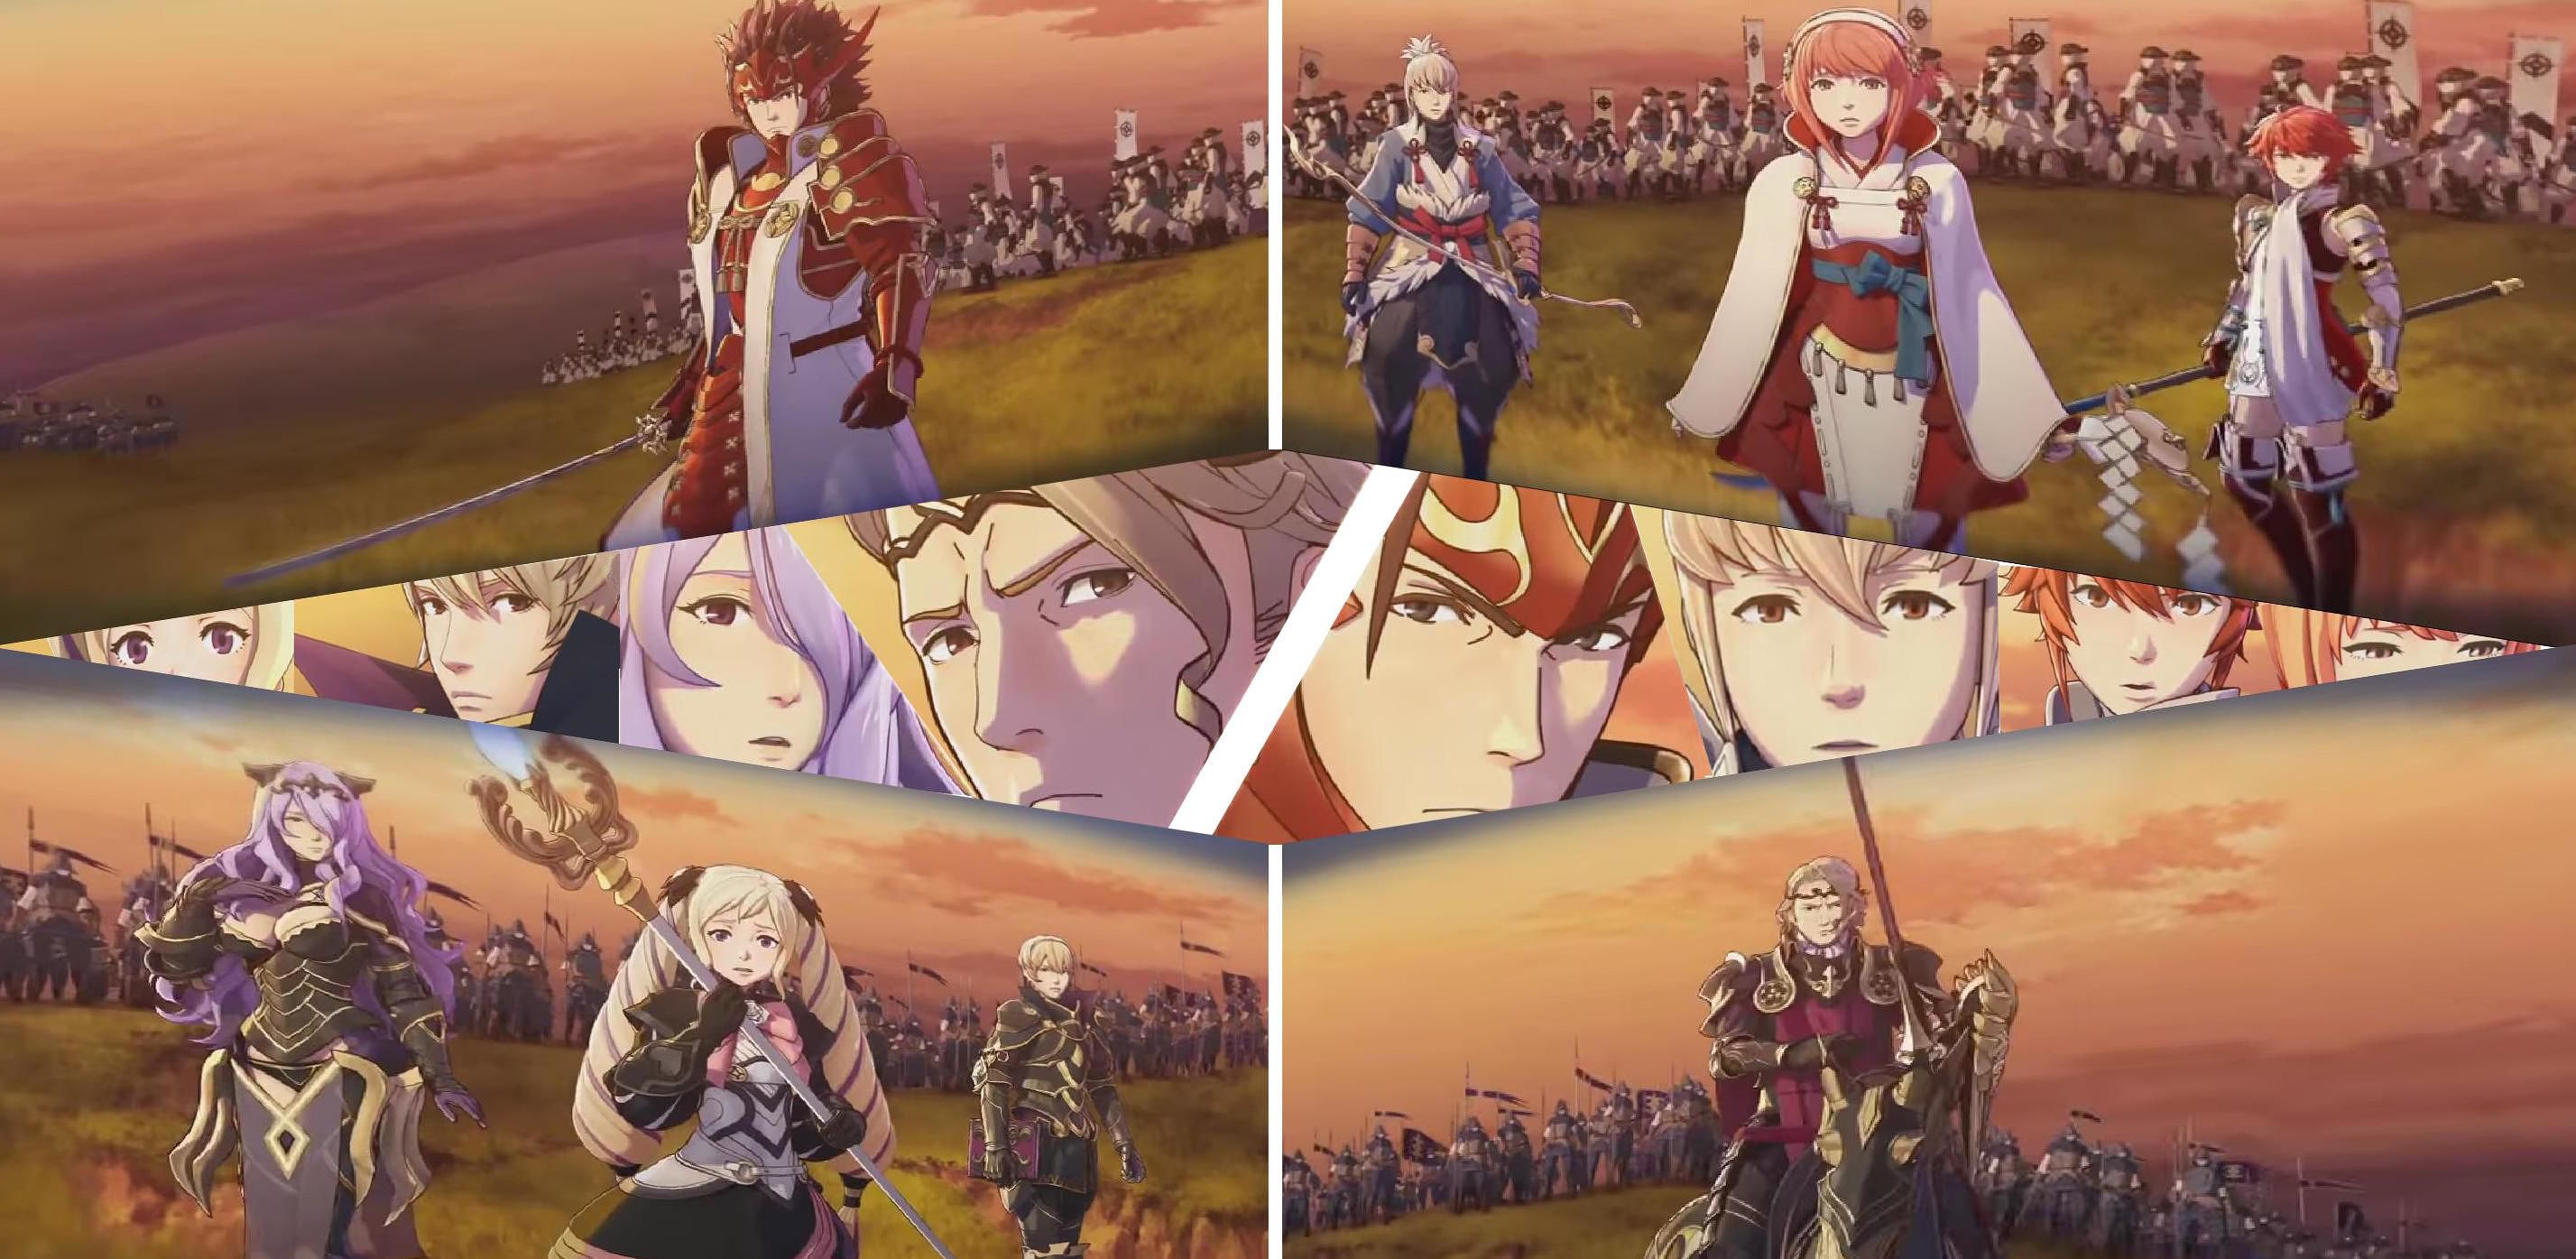 Modojo | Check Out Fire Emblem Fates' Character Classes and Relationships in this Video